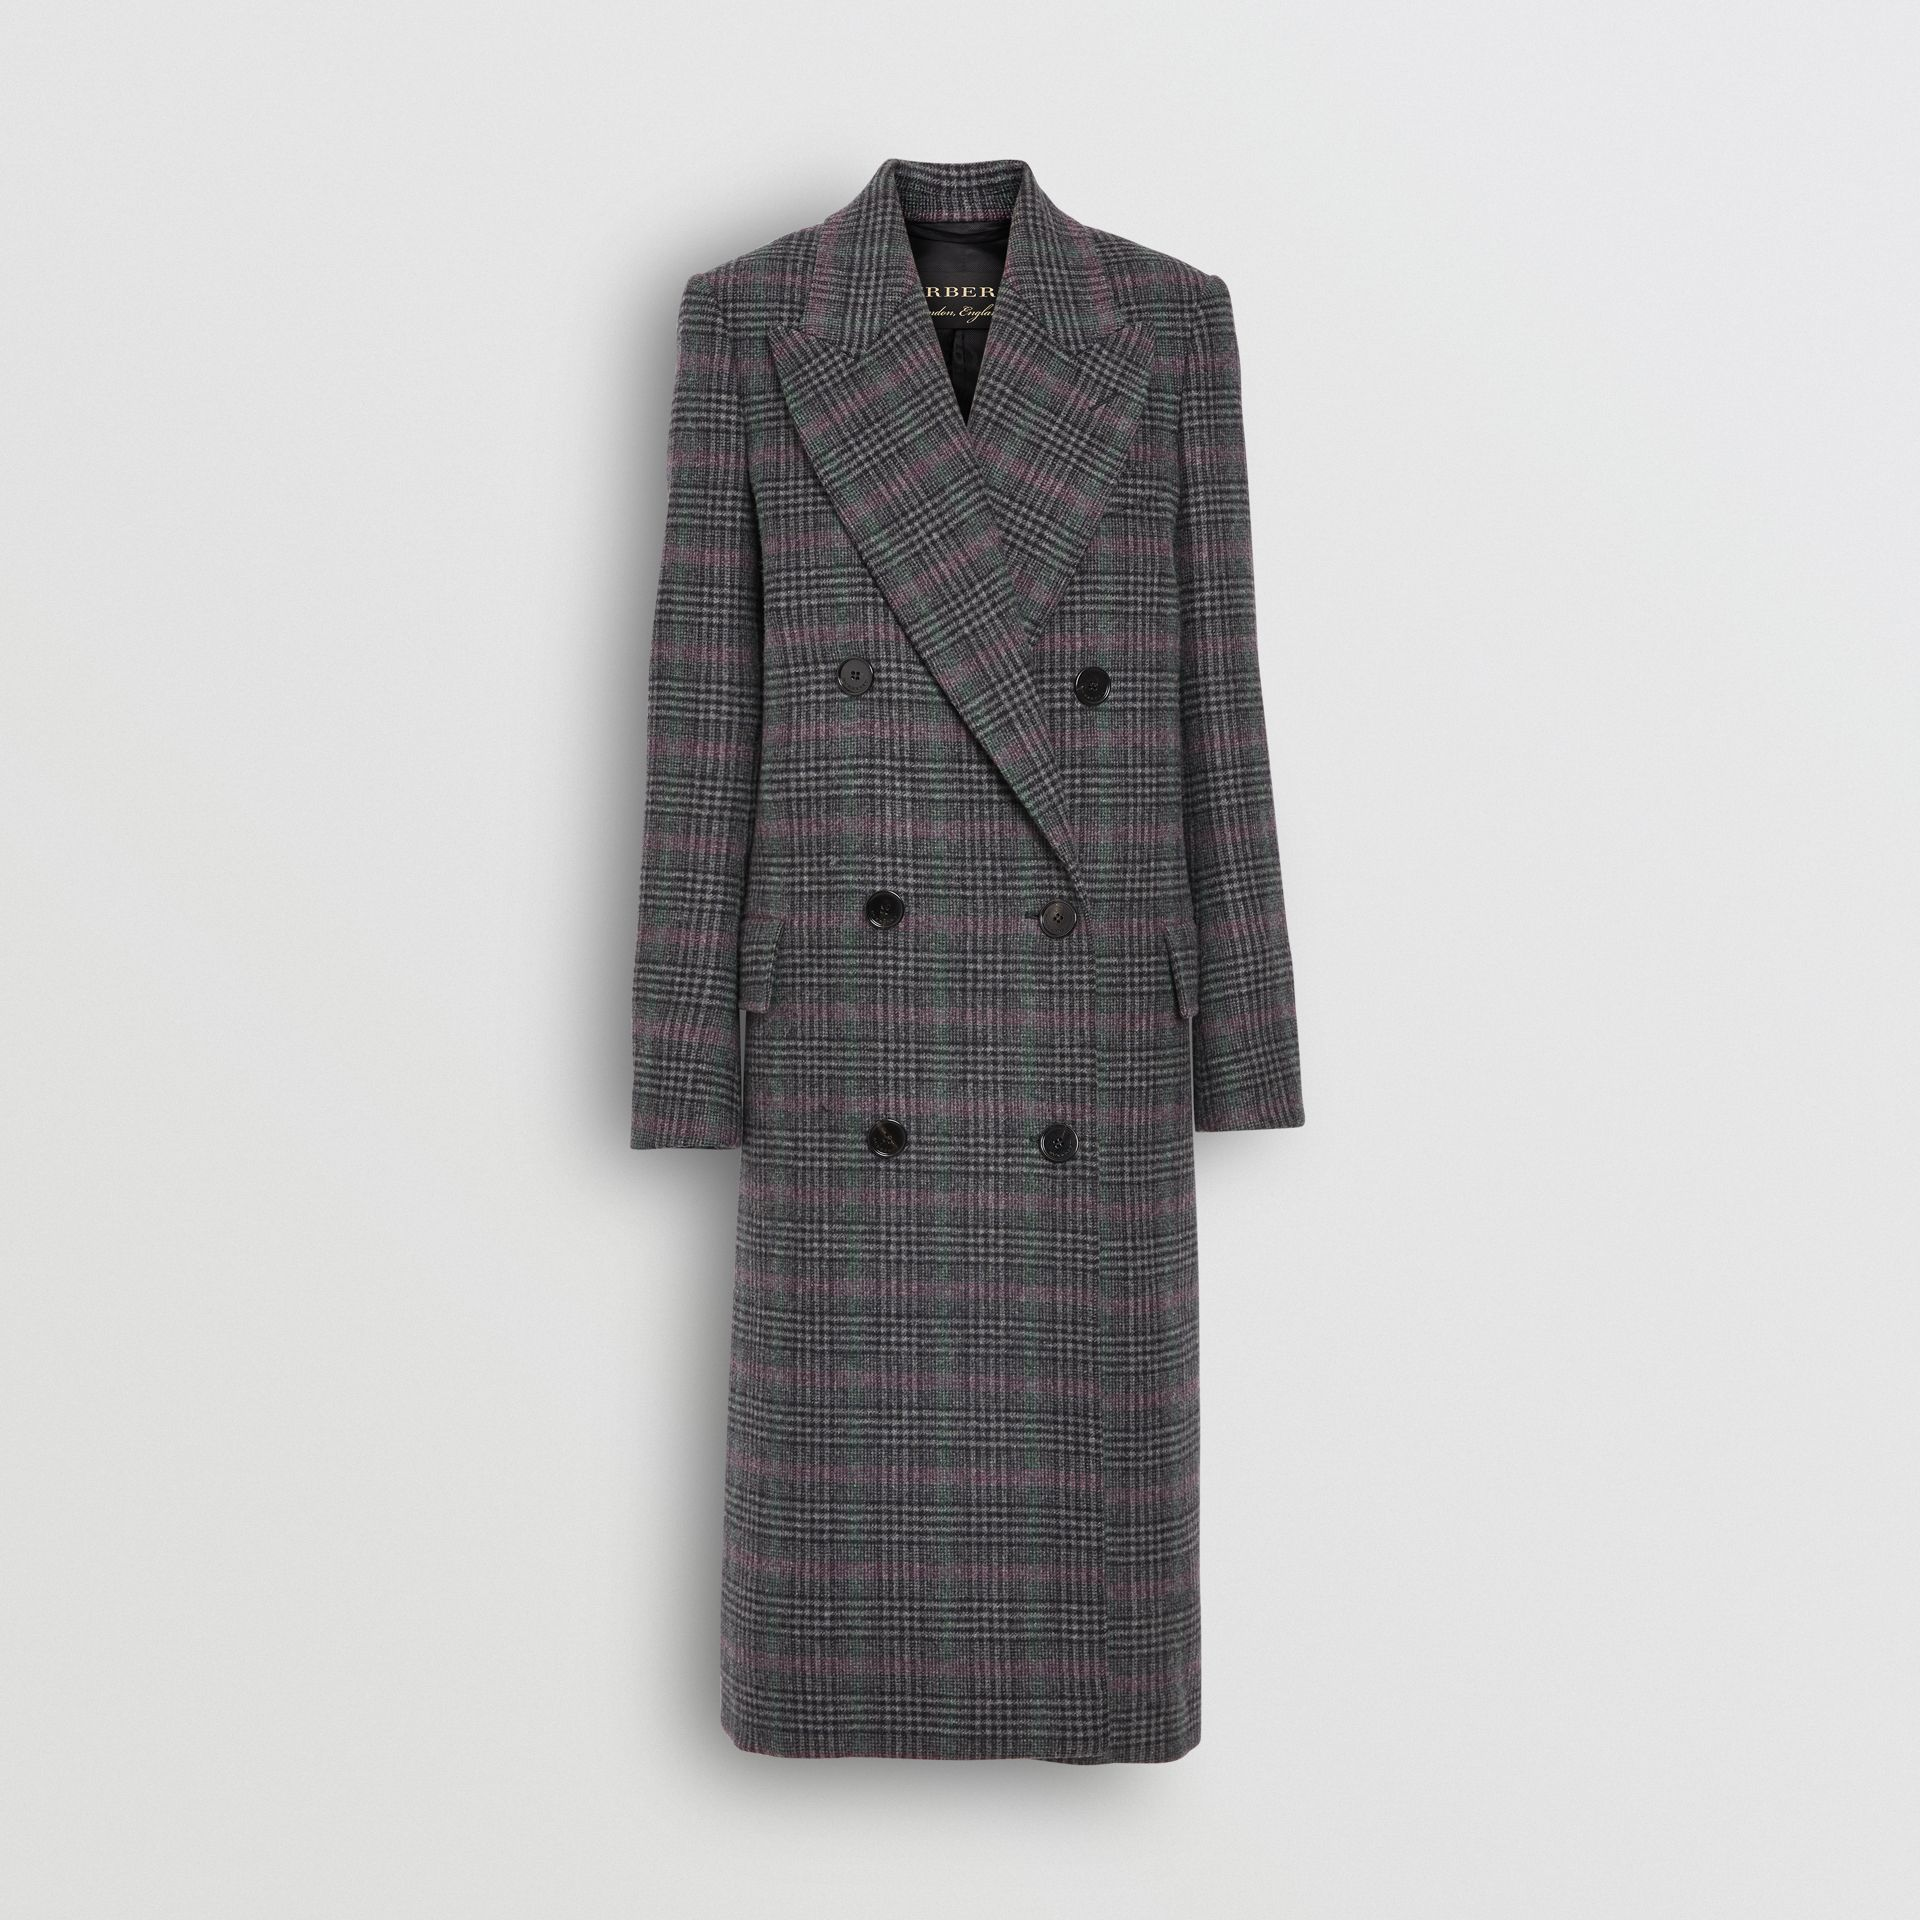 Prince of Wales Check Wool Tailored Coat in Charcoal - Women | Burberry United States - gallery image 3